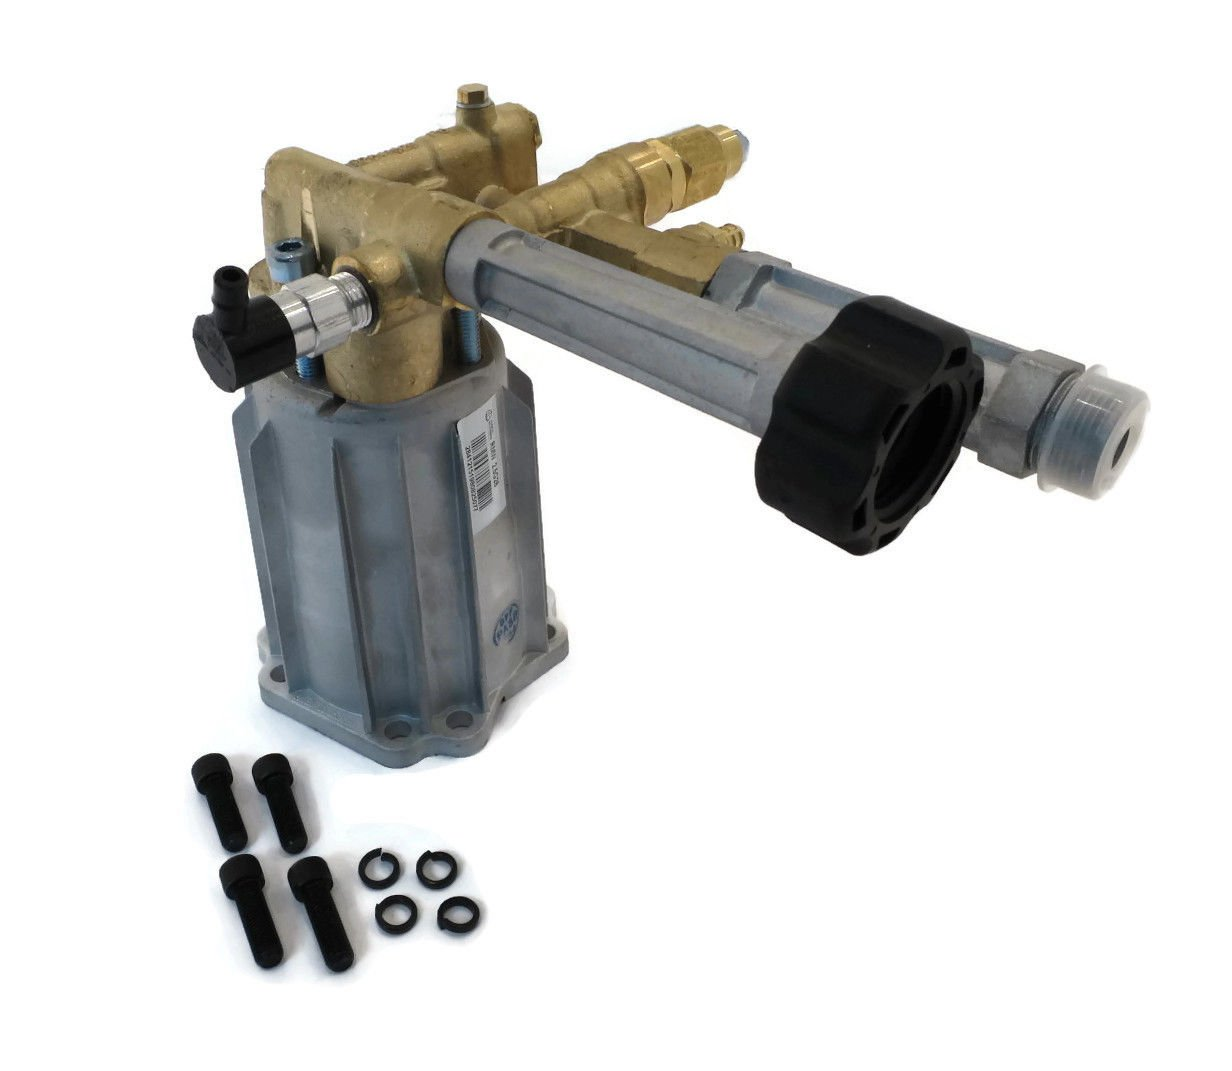 Annovi Reververi OEM Power Pressure Washer Water Pump 2600 PSI - Craftsman 580.752600 580.752601 by The ROP Shop